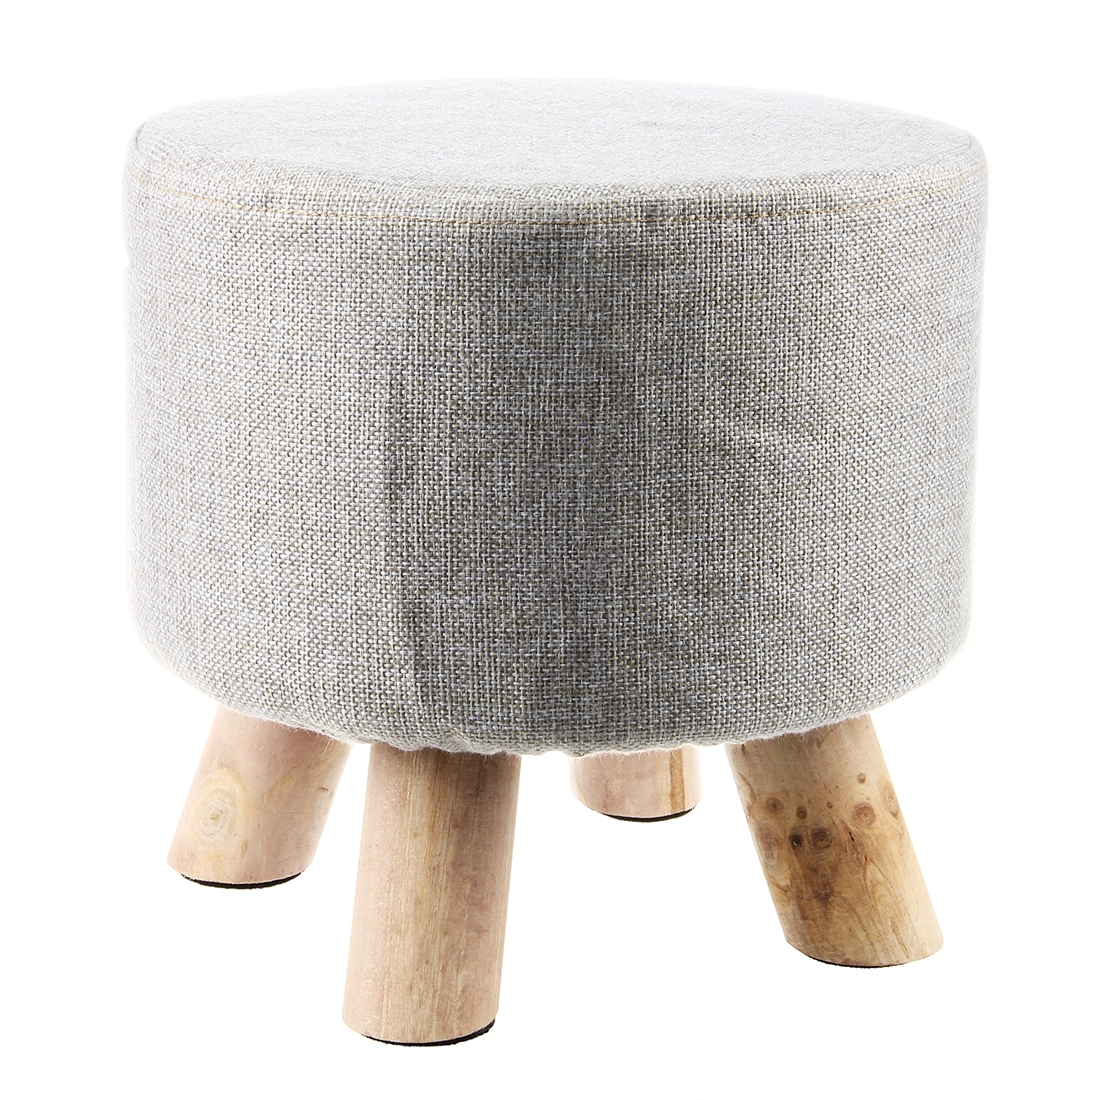 Online Get Cheap Round Fabric Ottomans Aliexpress Alibaba Group Pertaining To Fabric Footstools And Pouffes (Image 12 of 15)